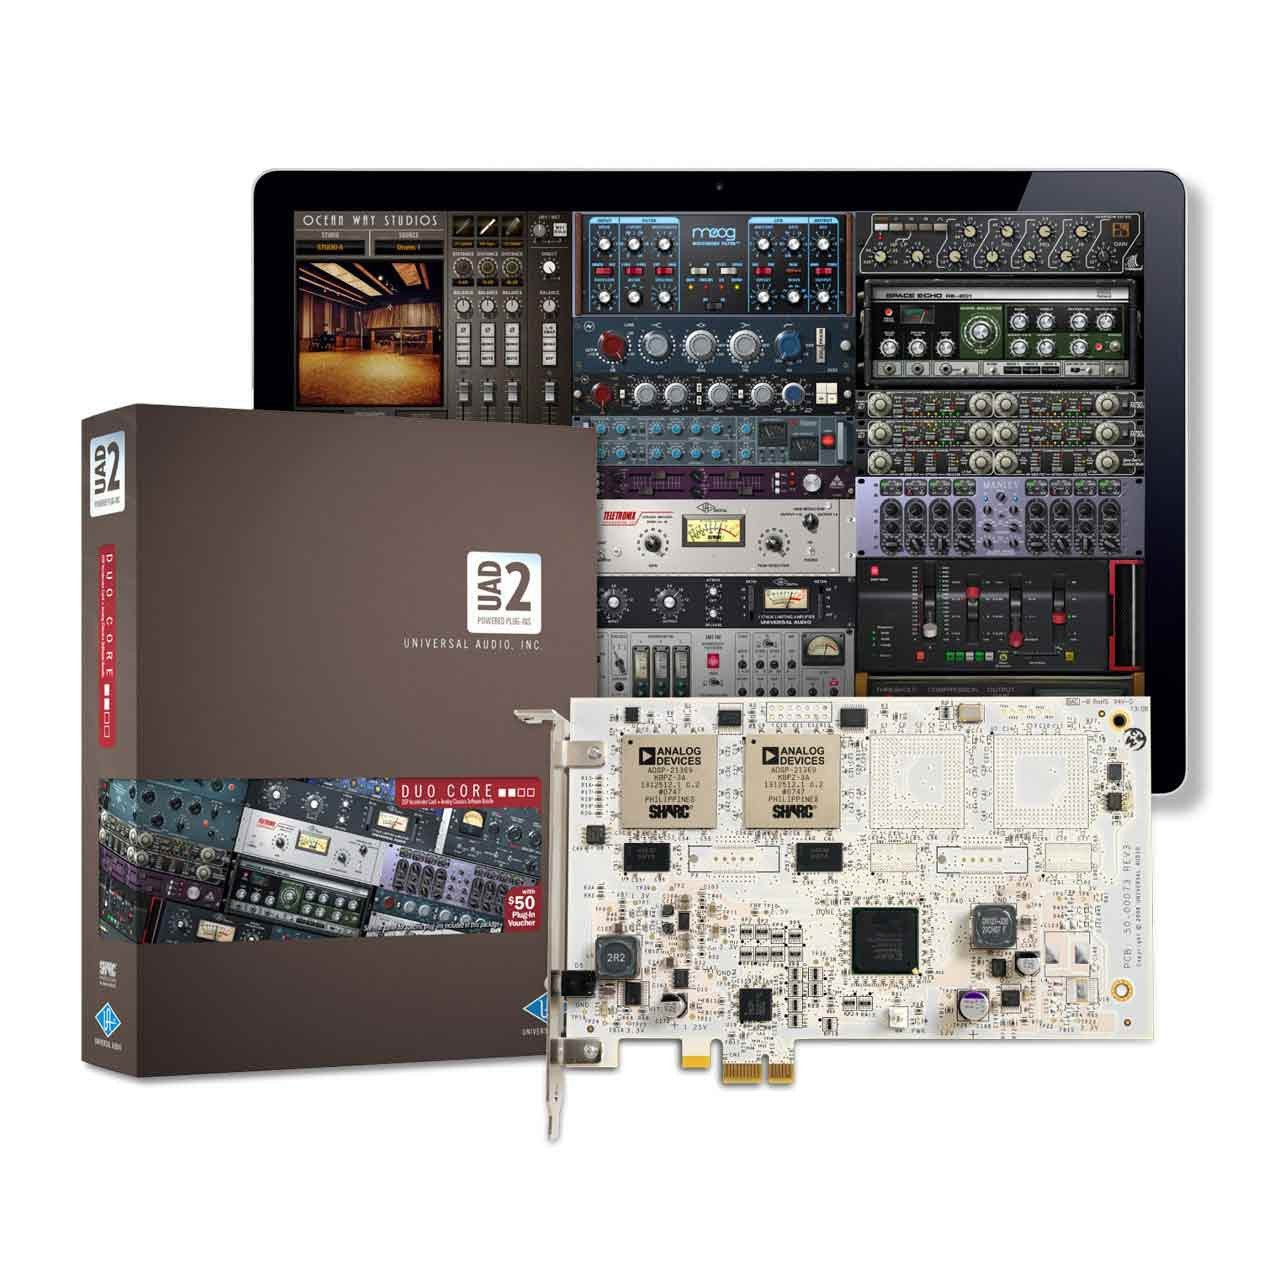 Universal Audio UAD-2 Duo Core PCIe